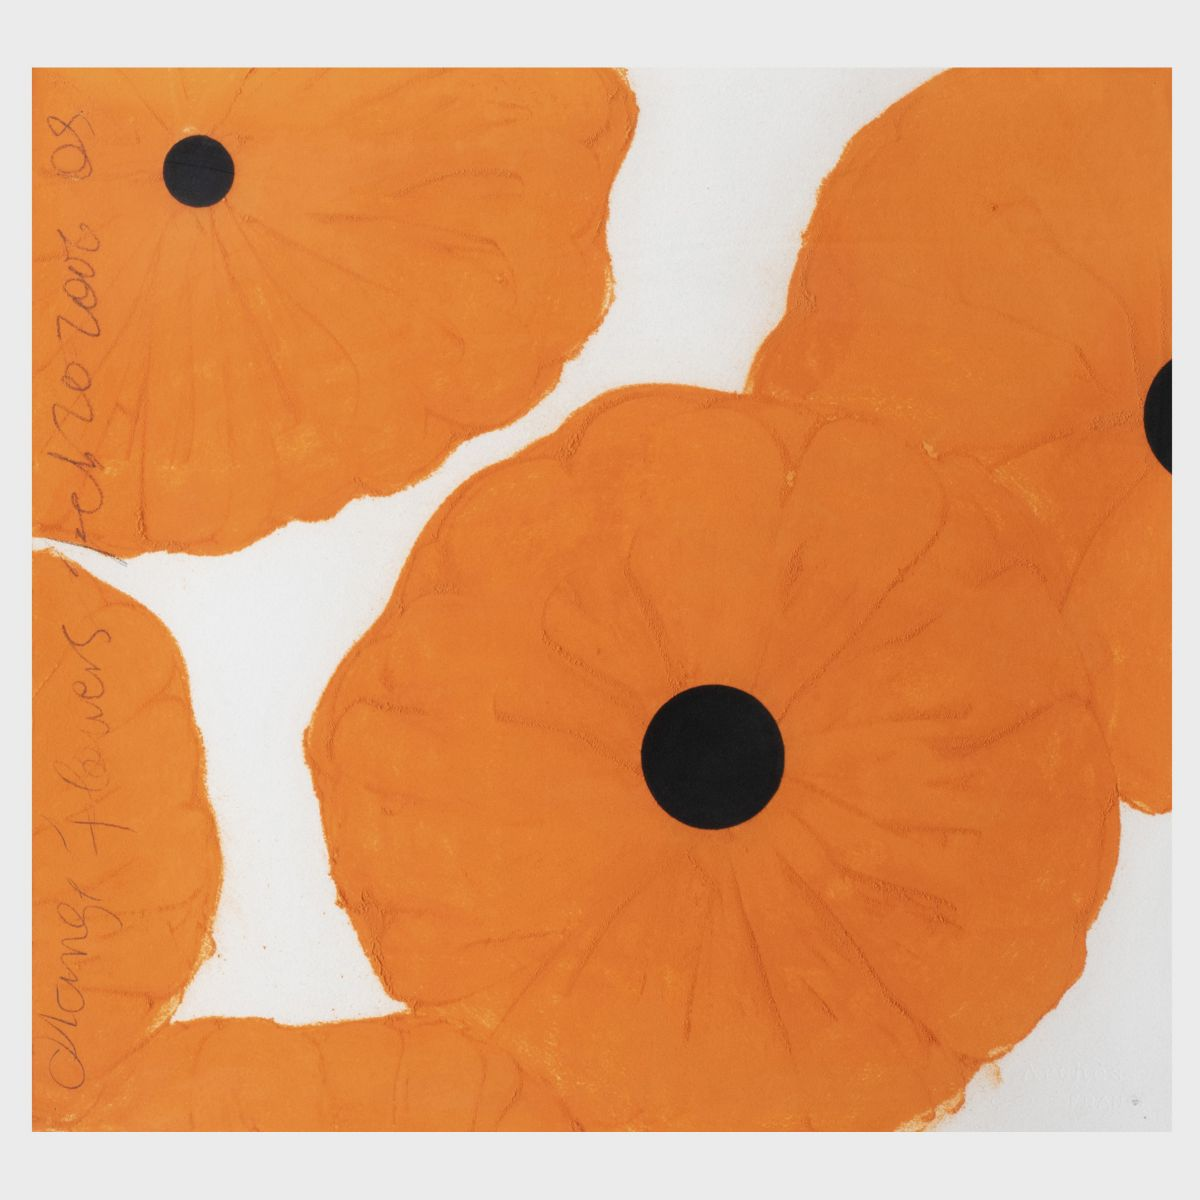 Lot 417, Donald Sultan, Orange Flowers, Feb. 20, 2006, Conte crayon and flock on paper, 2006